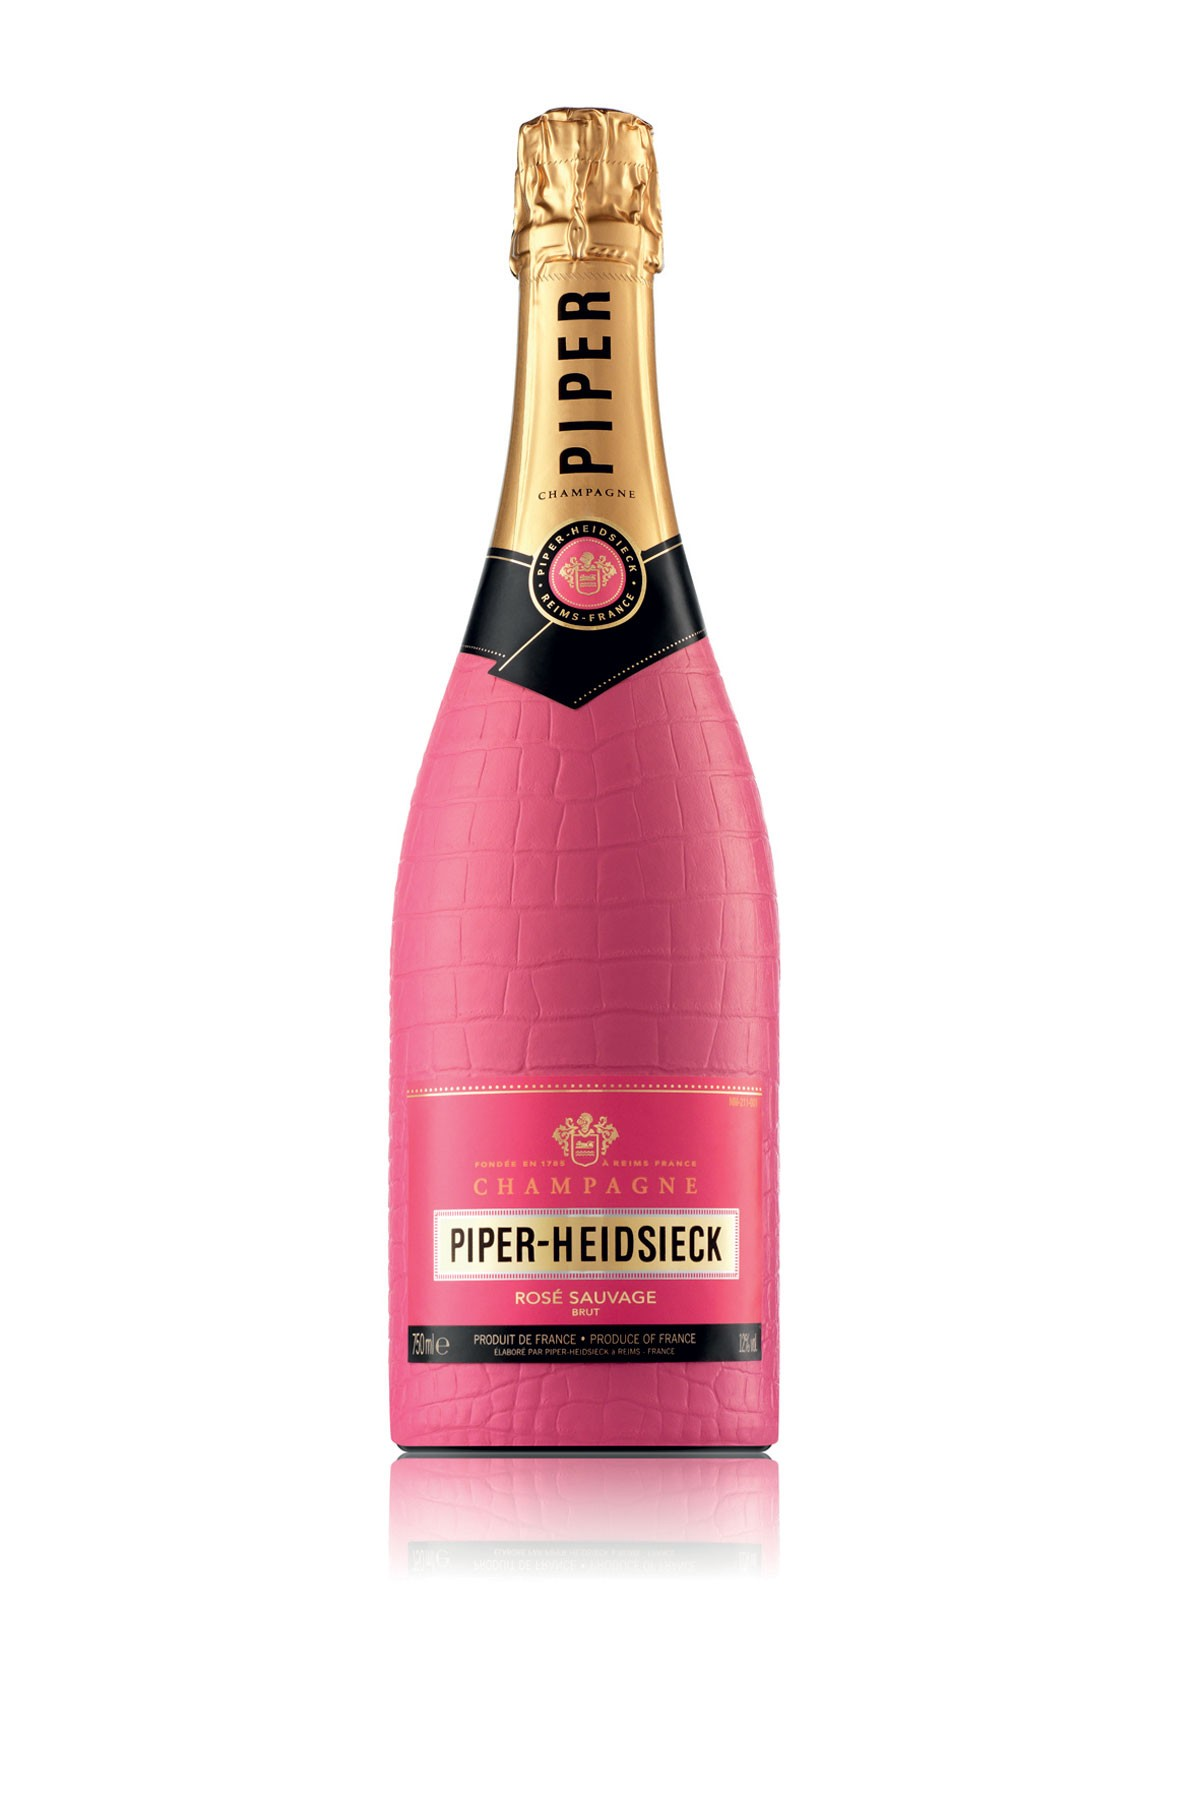 Piper-Heidsieck Rose Sauvage Brut NV